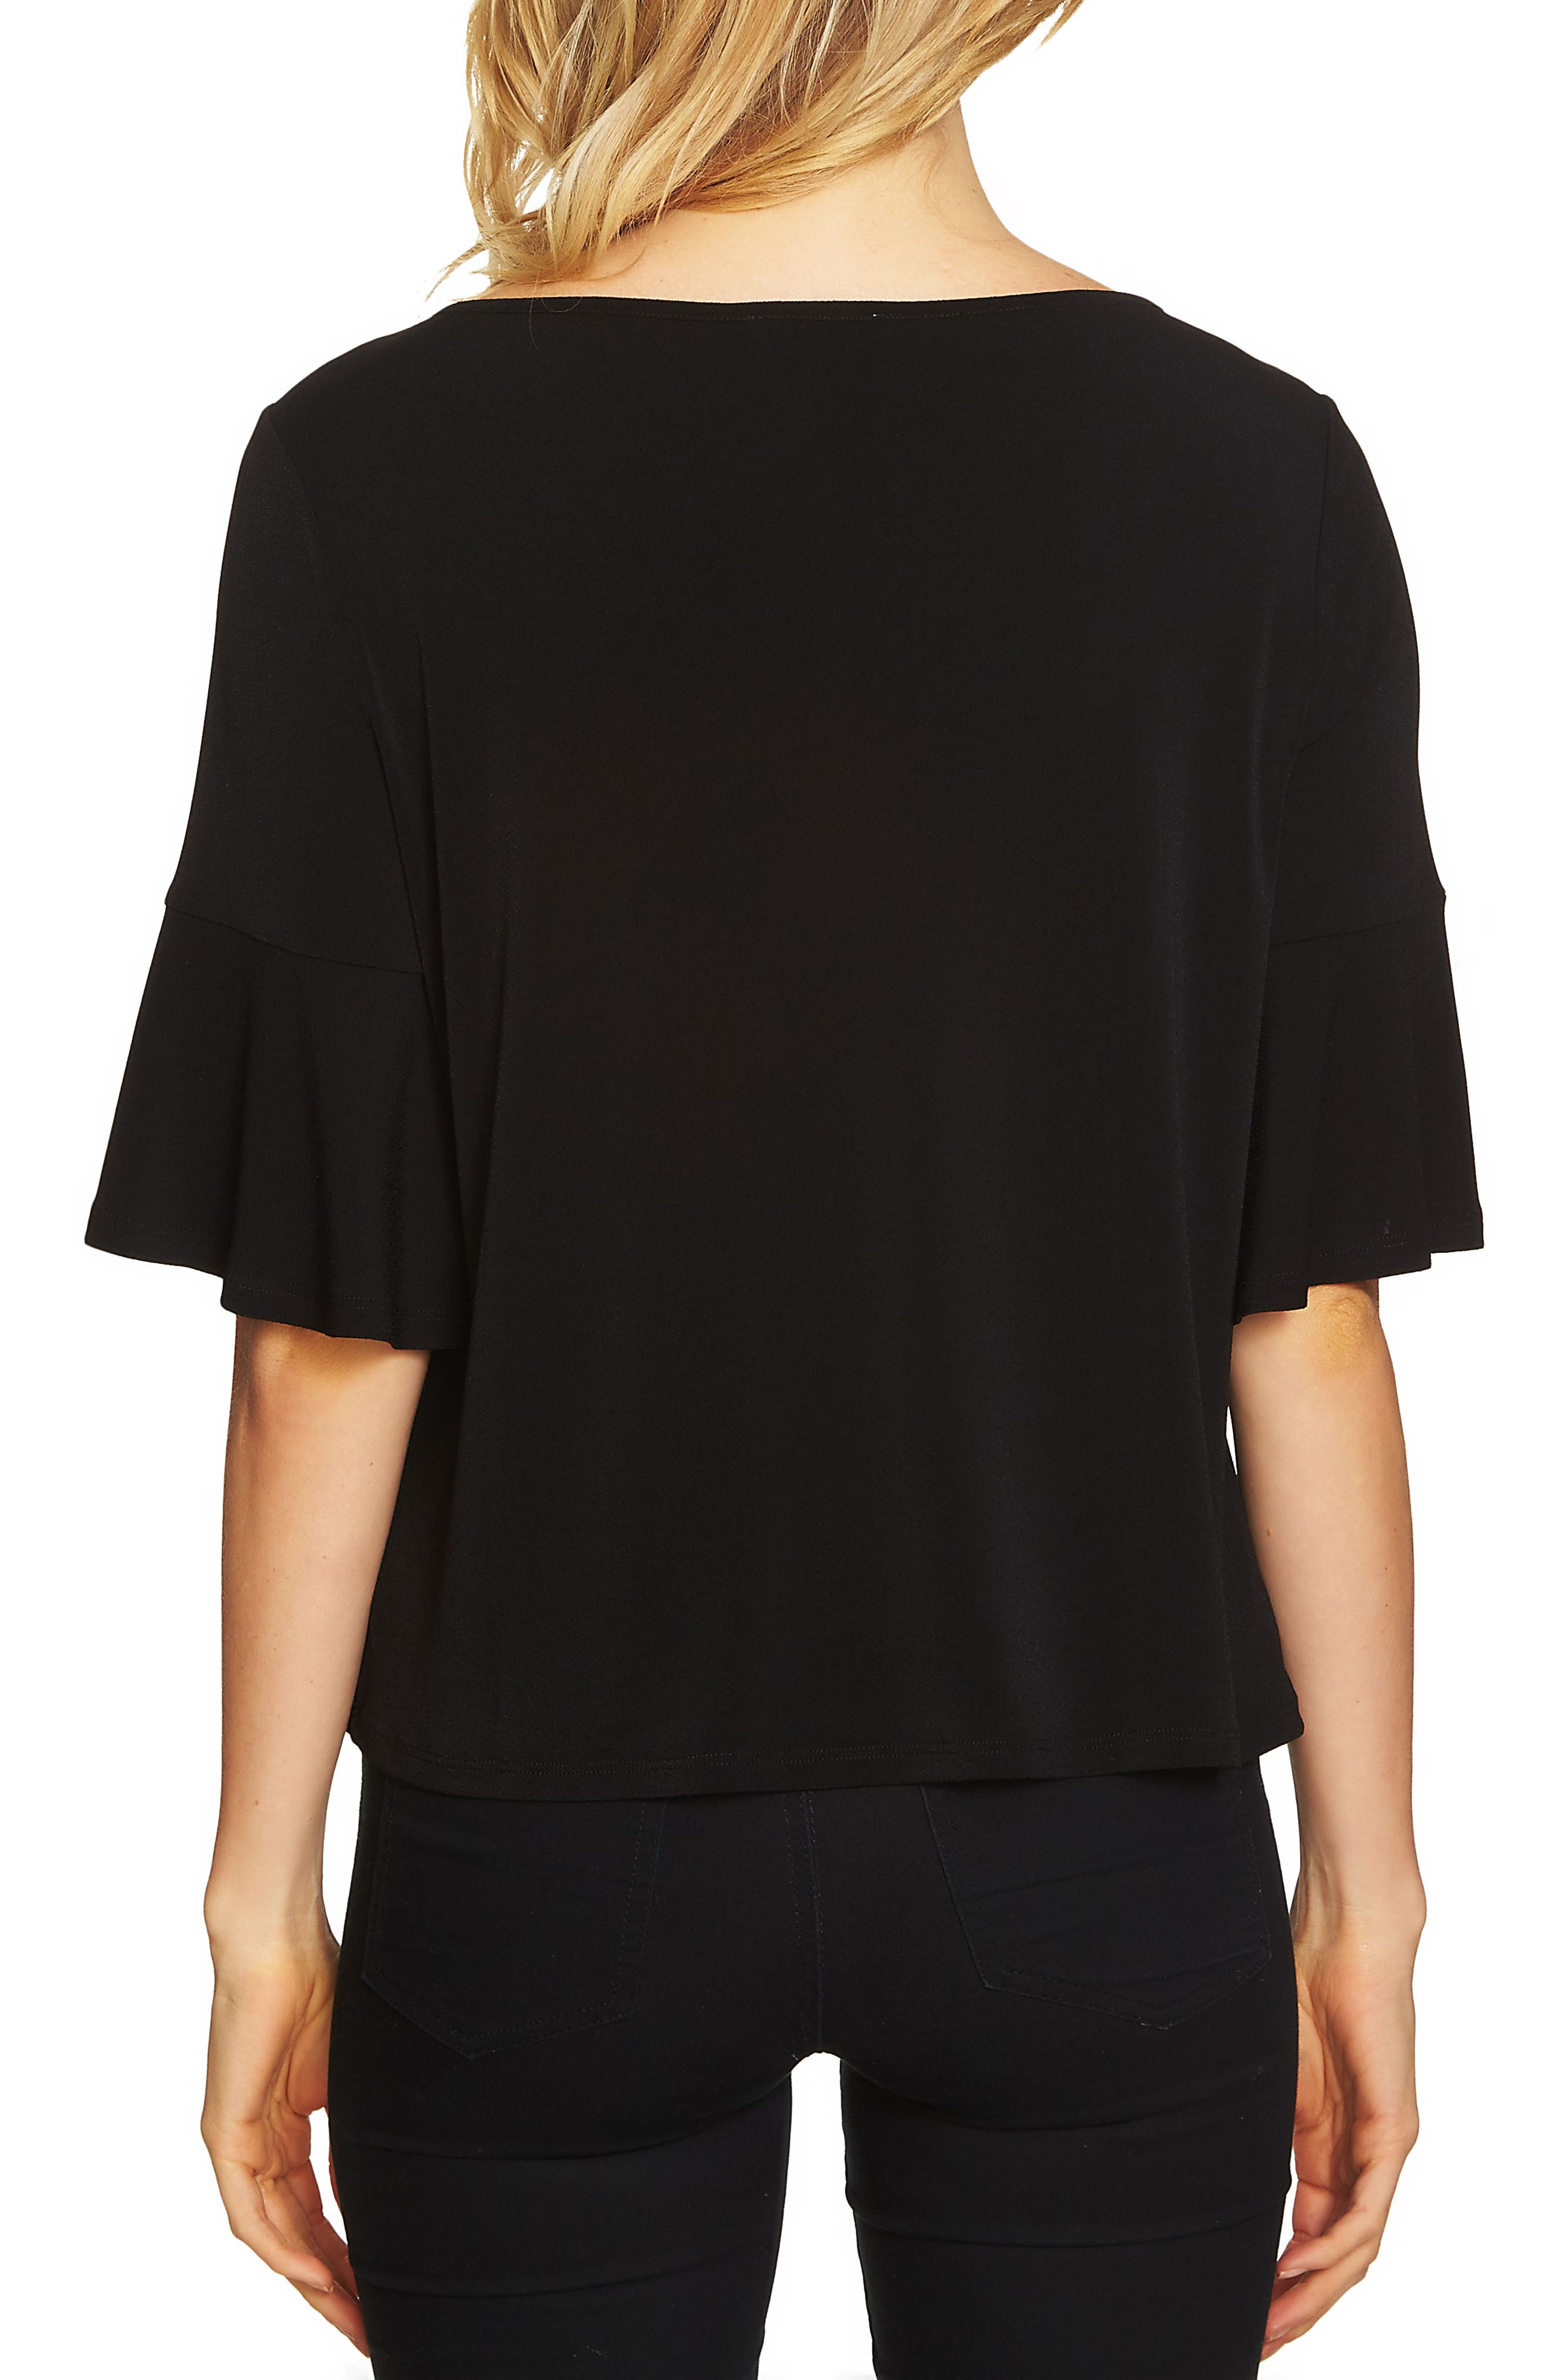 Ruffle Sleeve Crepe Knit Top,                             Alternate thumbnail 2, color,                             001